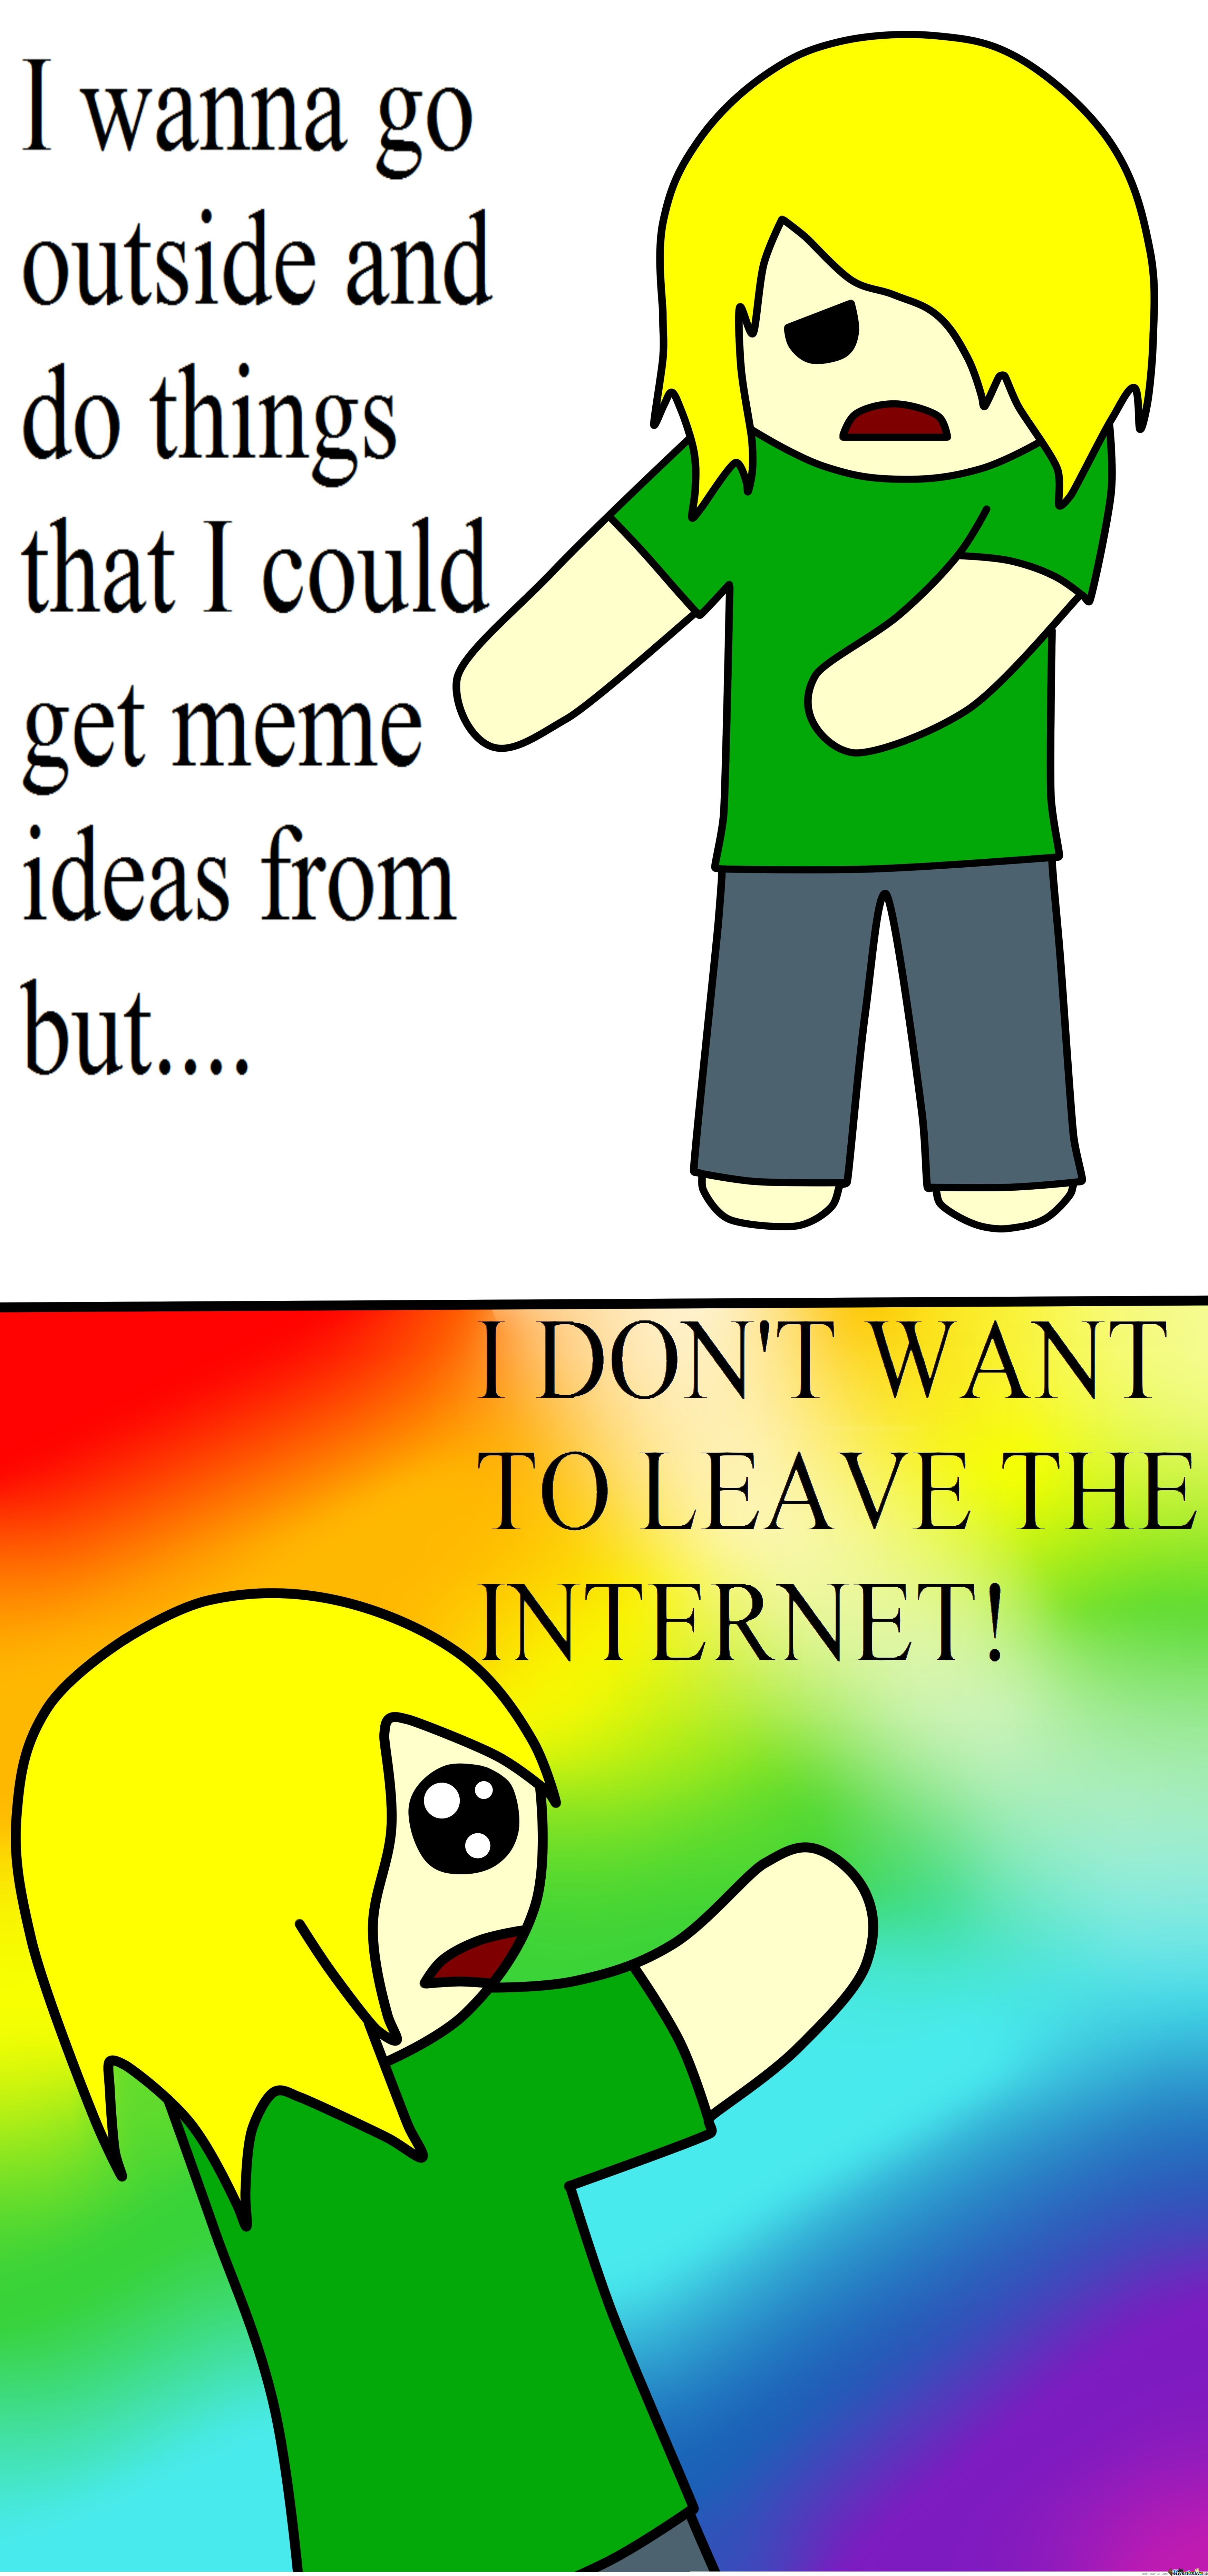 Internet Or Ideas? D: